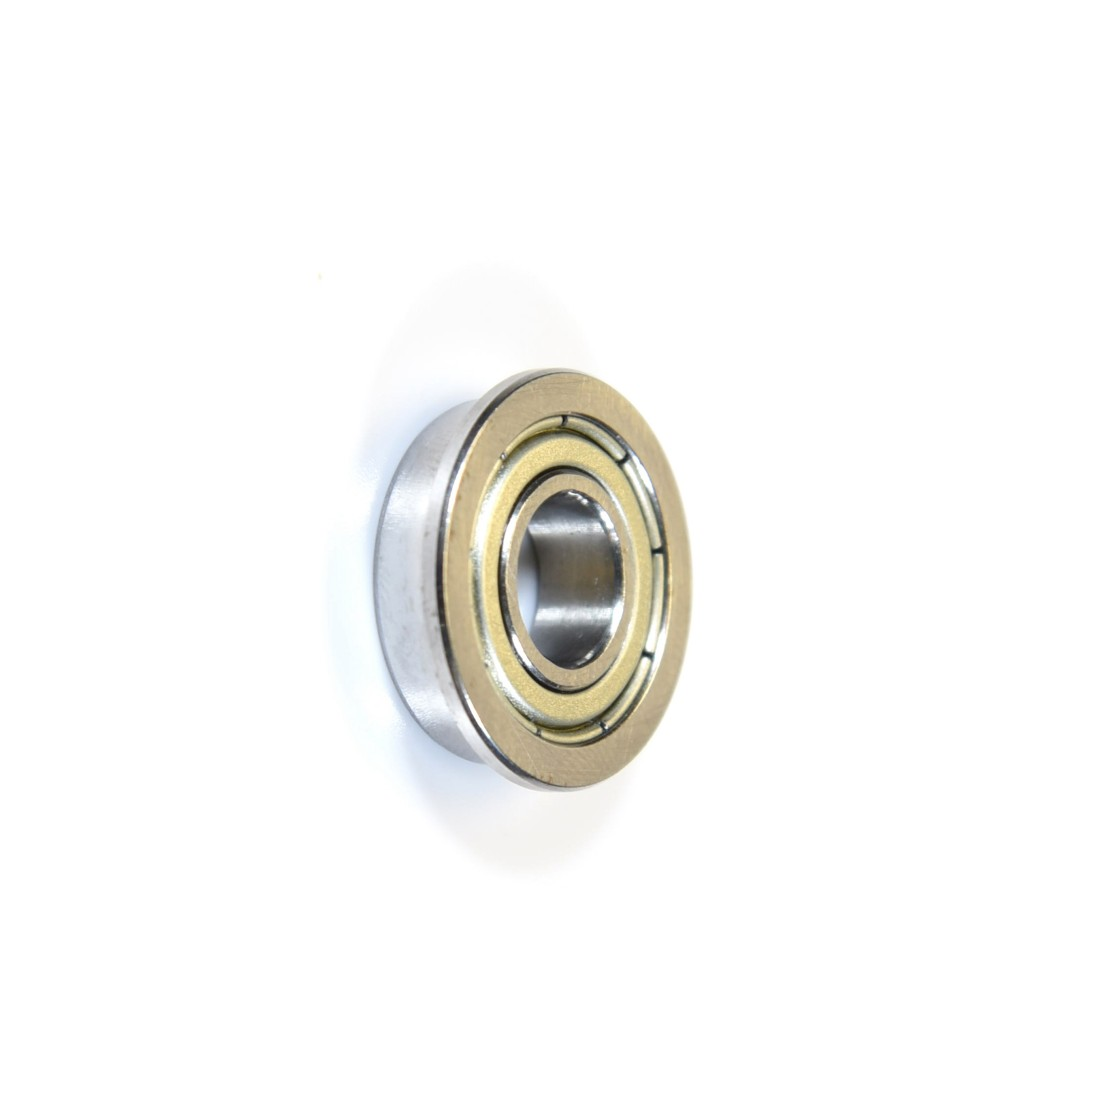 Miniature Bearing 3mm 5mm 6mm 8mm 9mm 10mm 12mm 30mm 608 R188 Longboard Bearing Axial Stainless Steel RC Hybrid Ceramic Bearing with Ceramic Balls